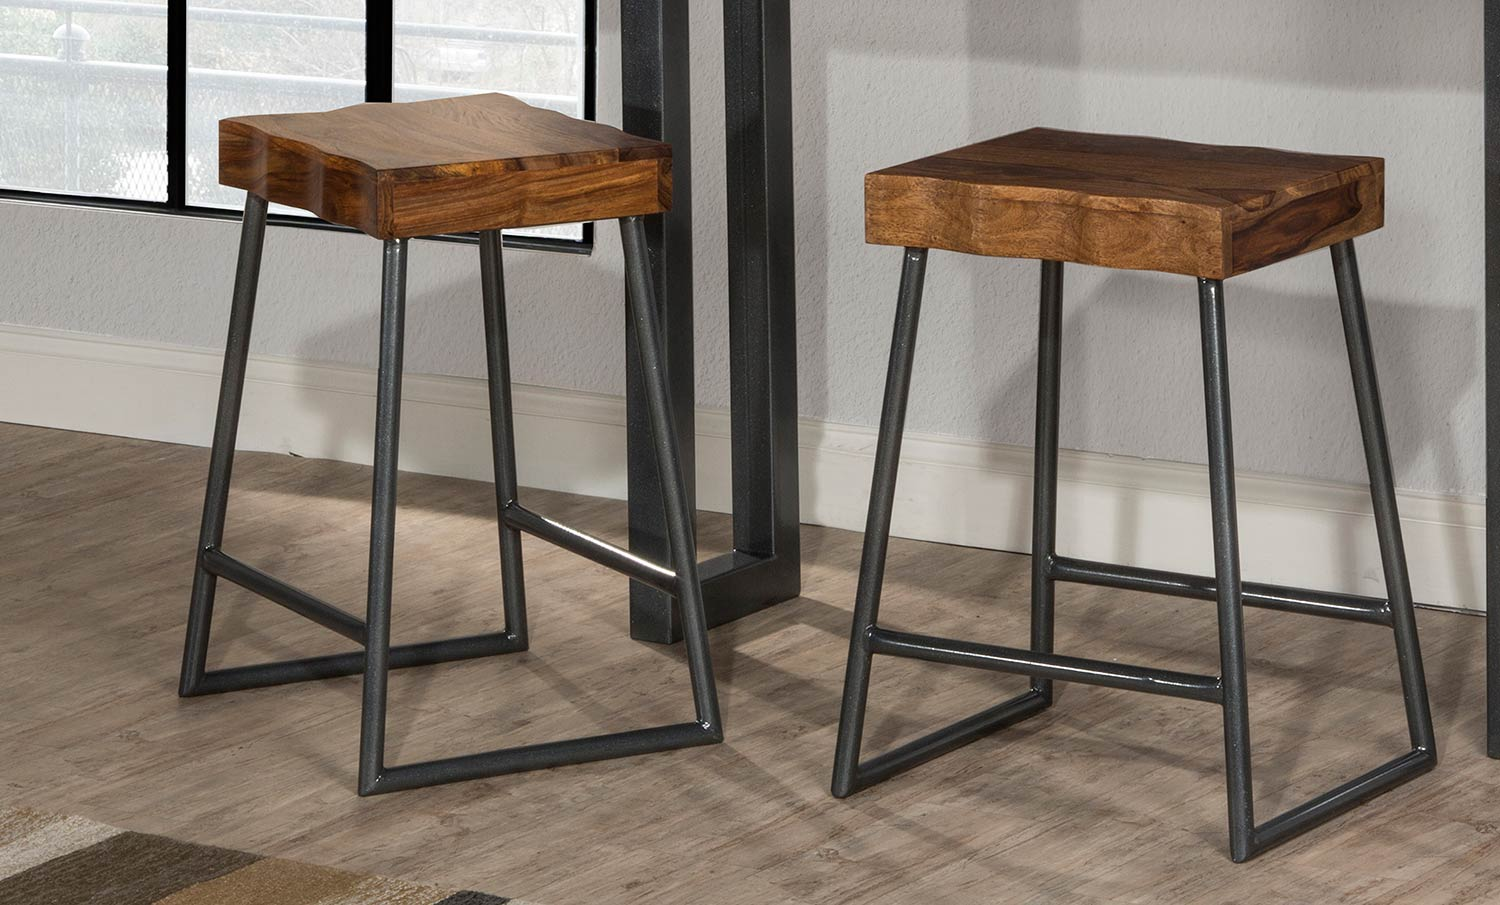 Hilale Emerson Non Swivel Backless Counter Stool Natural Sheesham Wood Gray Metallic